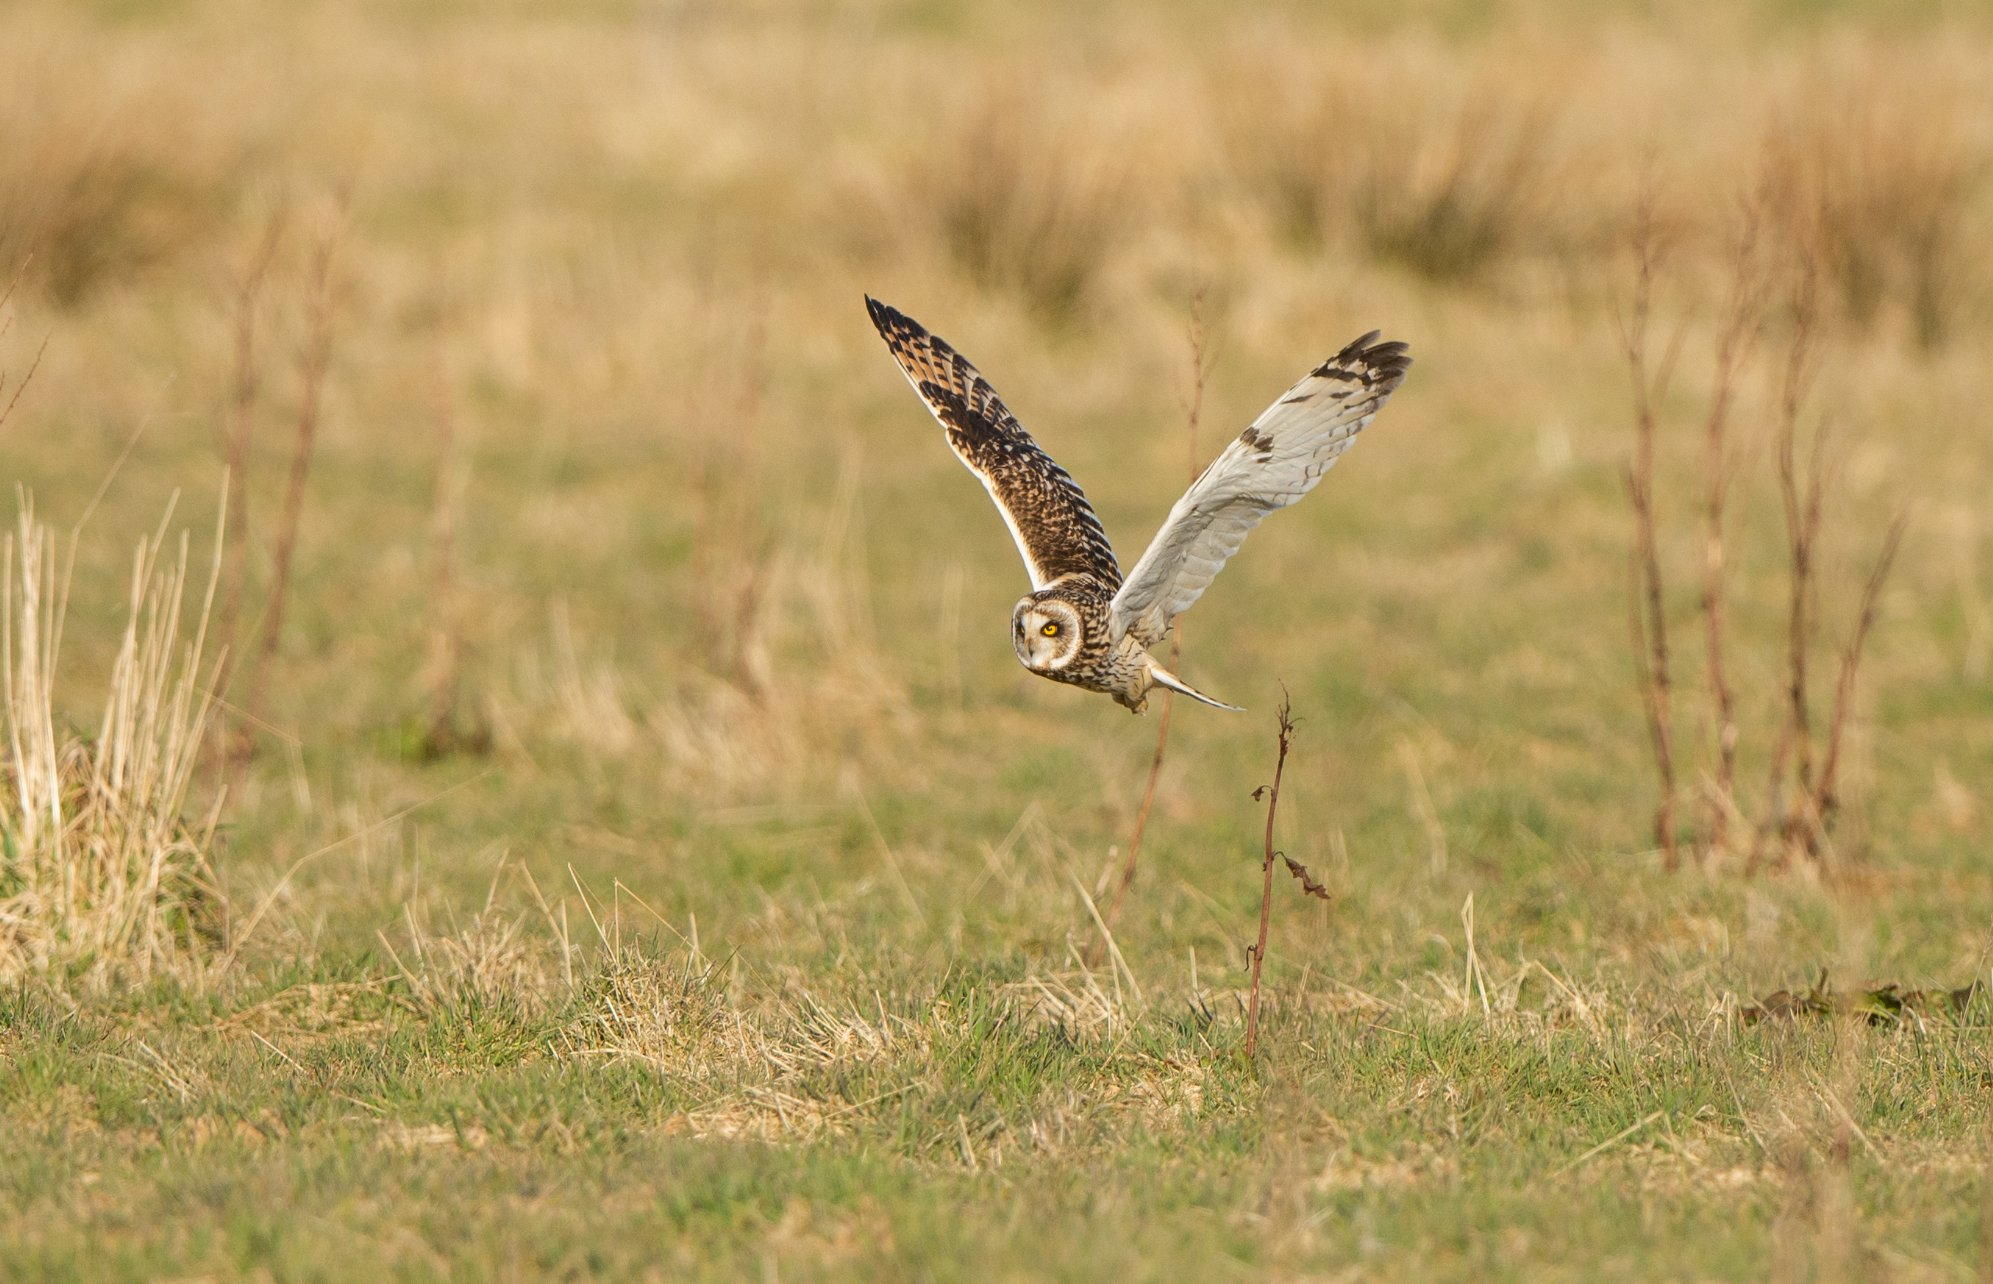 Short-eared owl in Orkney - image by Raymond Besant